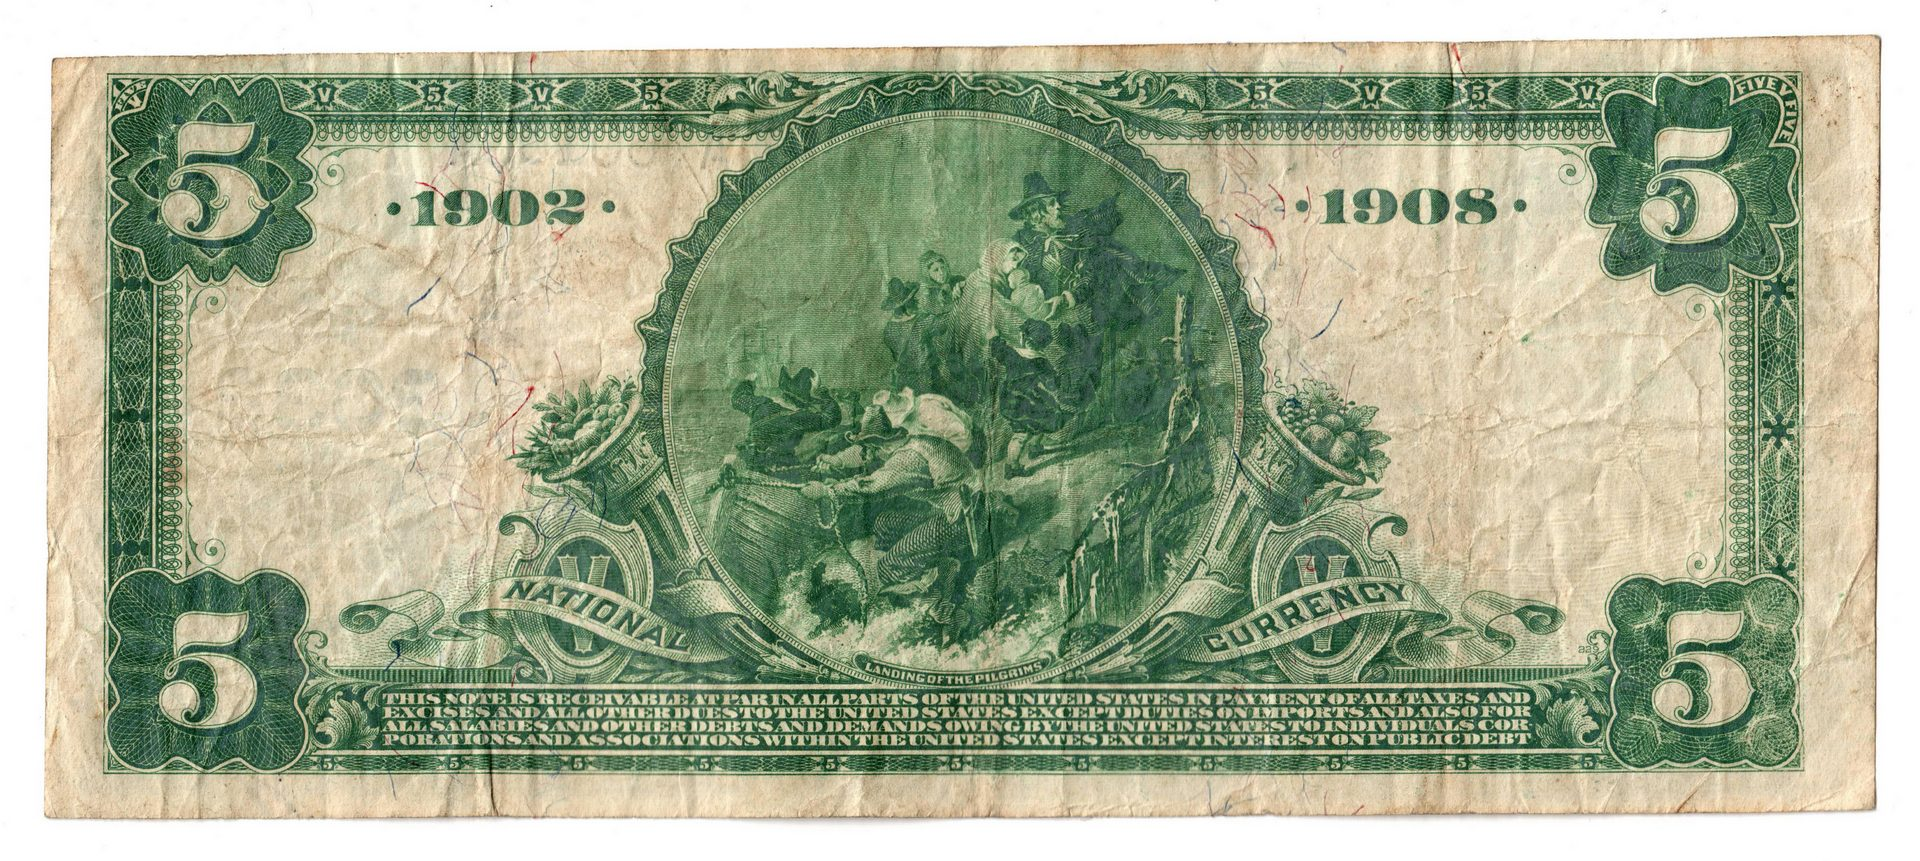 Lot 81: Two 1902 TN $5 Blue Seal National Currency Notes